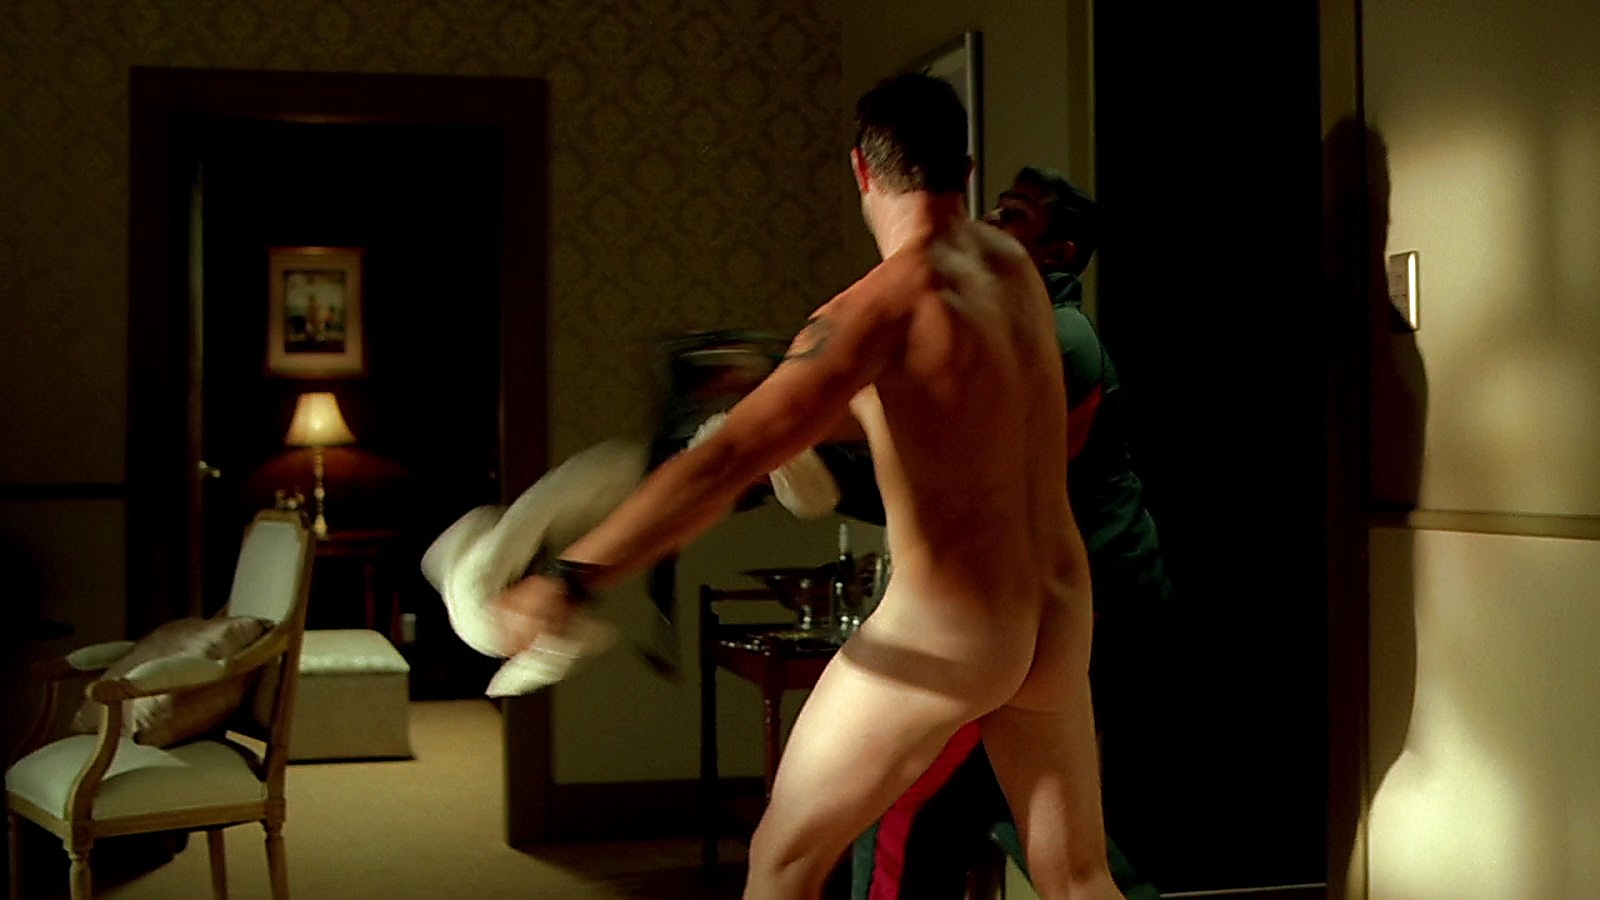 Sullivan Stapleton sexy shirtless scene February 29, 2020, 6am